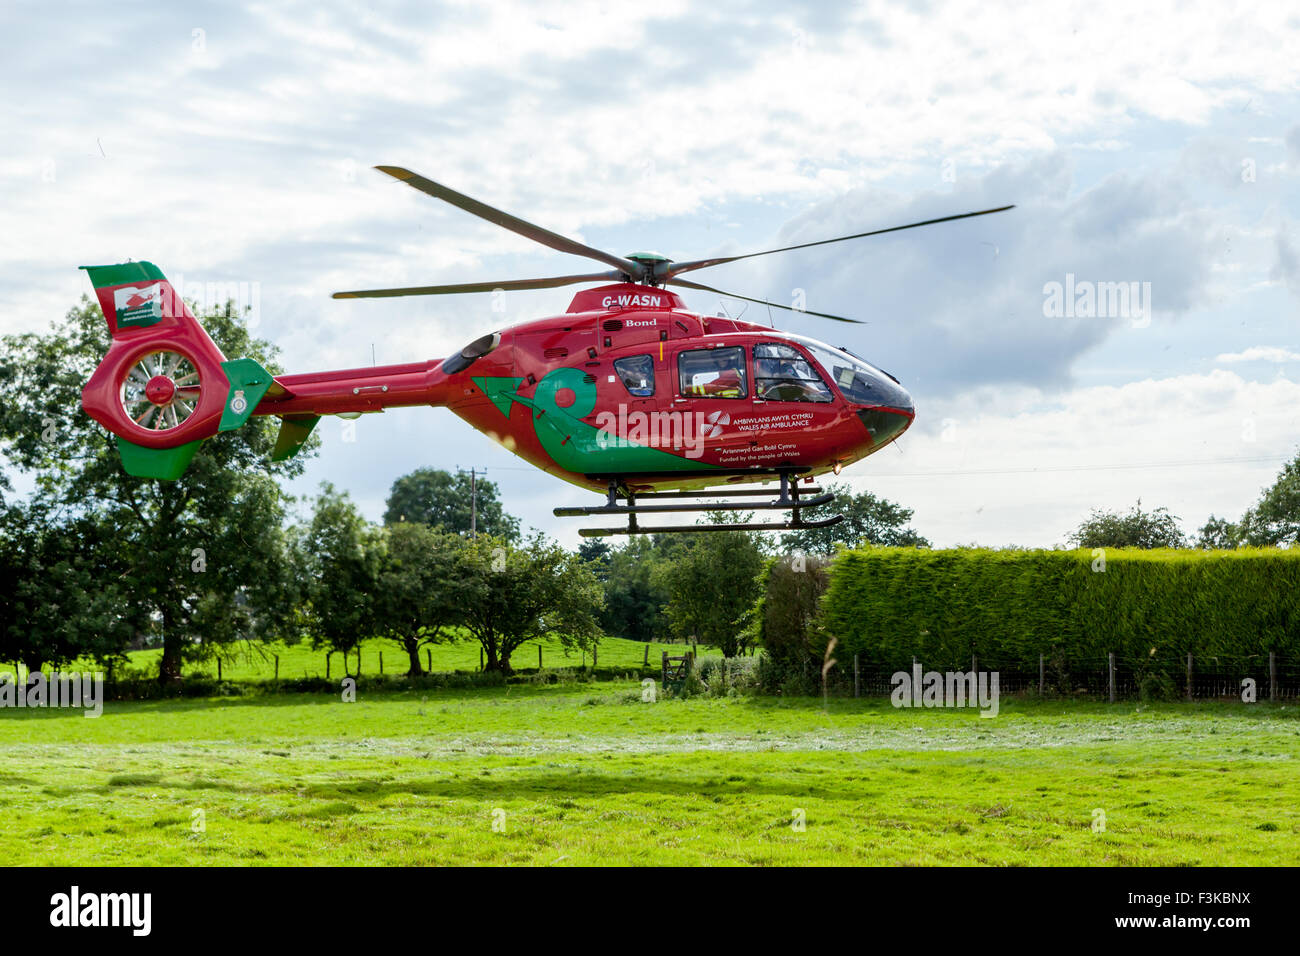 Wales air Ambulance on take off after attending emergency - Stock Image